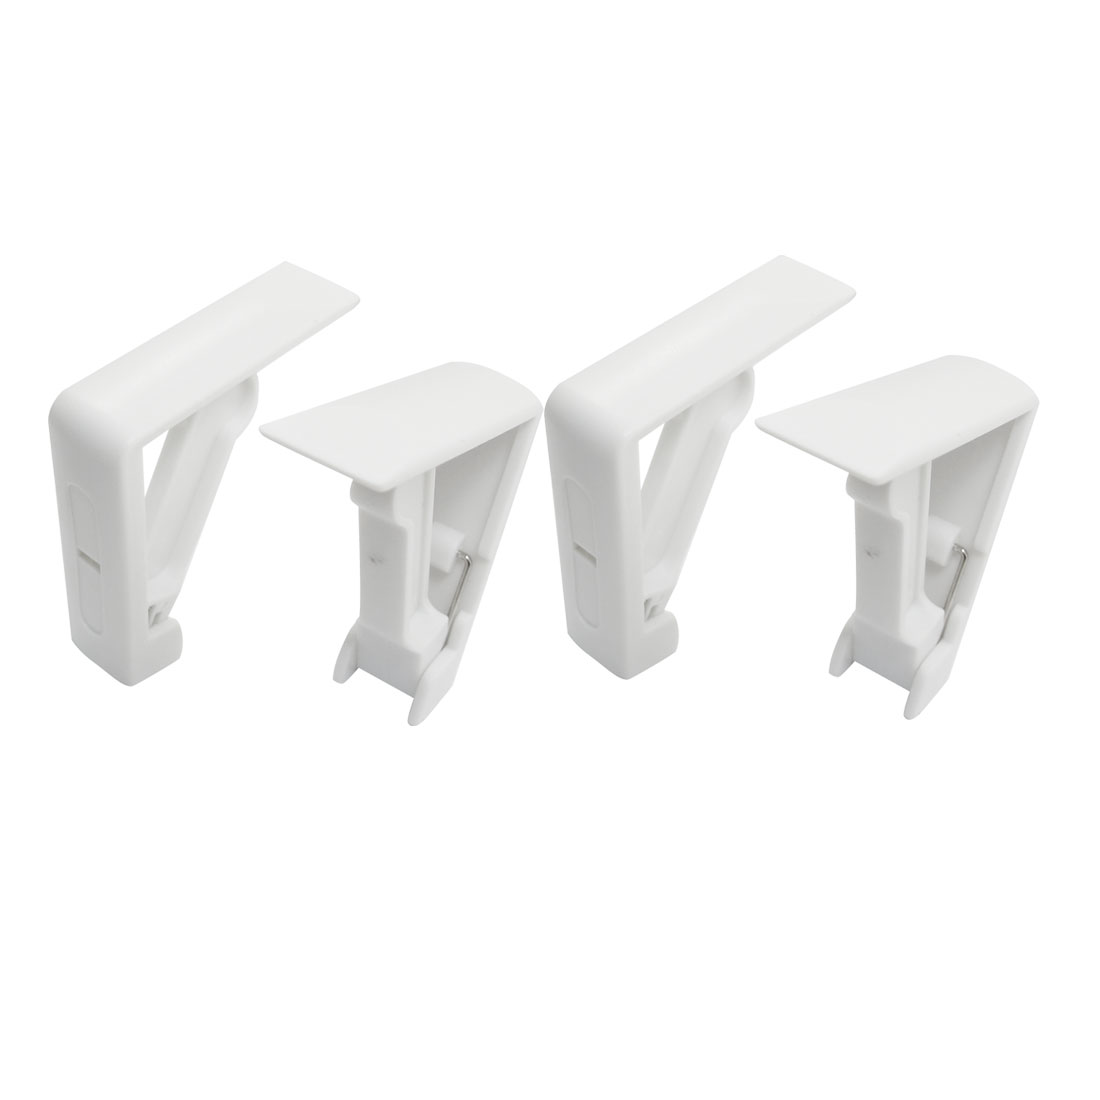 4 Pcs Table Cloth Cover Holder Spring Loaded Tablecloth Clamp Clips White